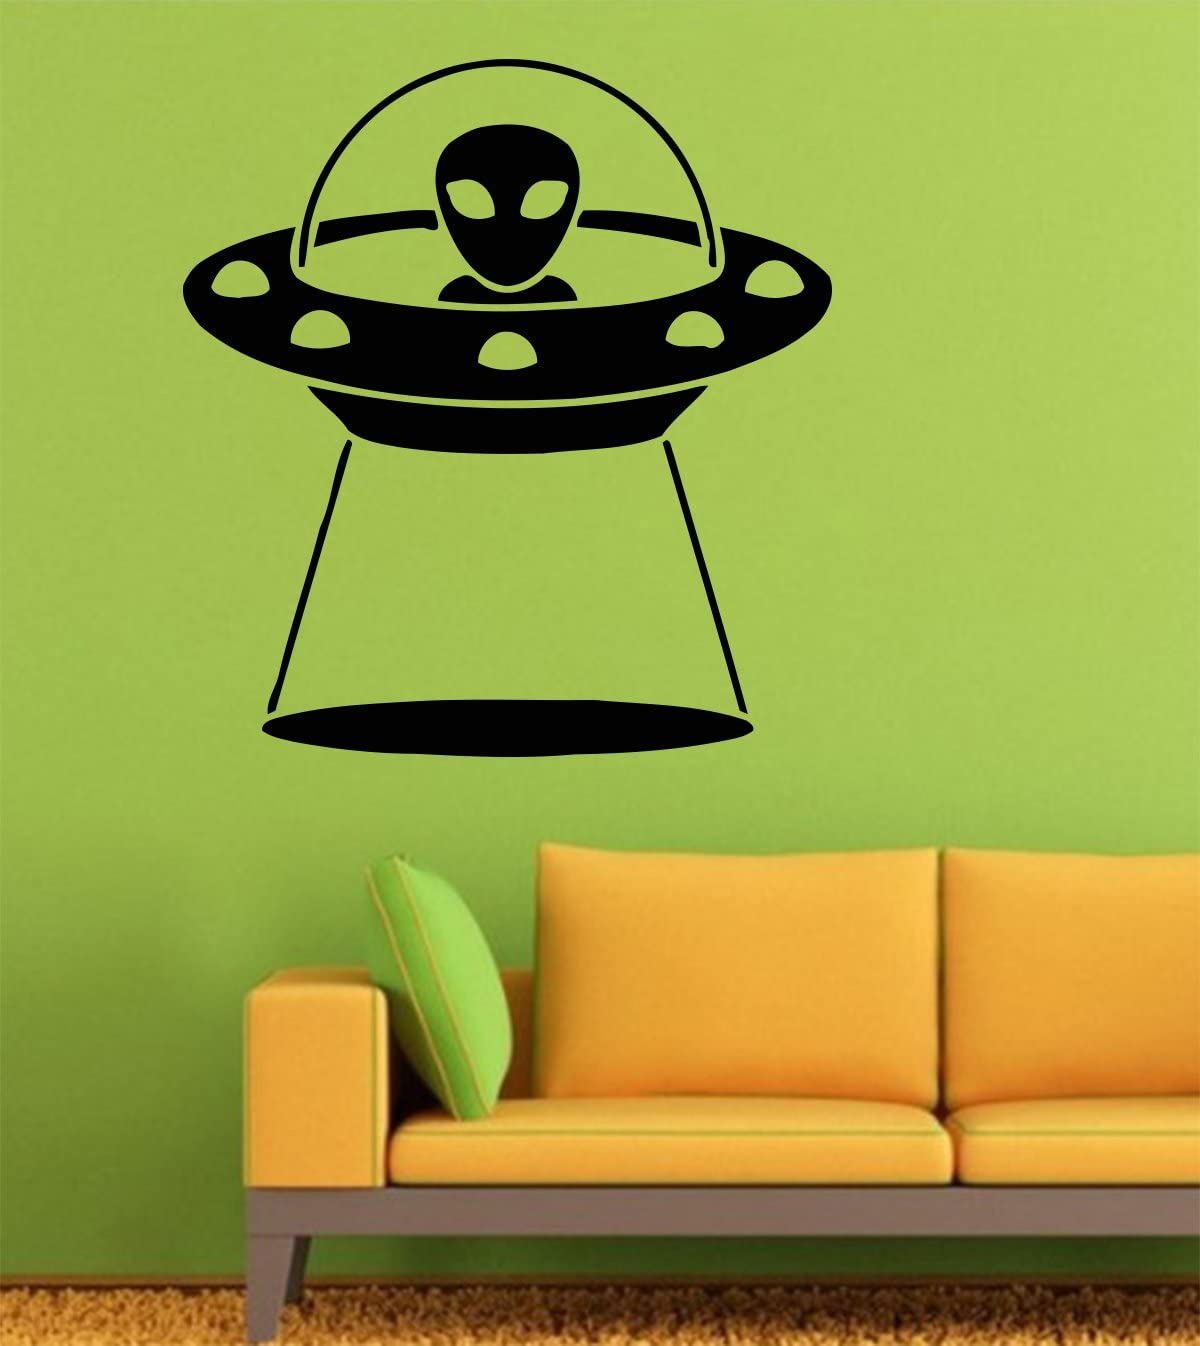 American Art Decals 451 Wall Decal UFO お気にいる Space おしゃれ Decas — Vinyl